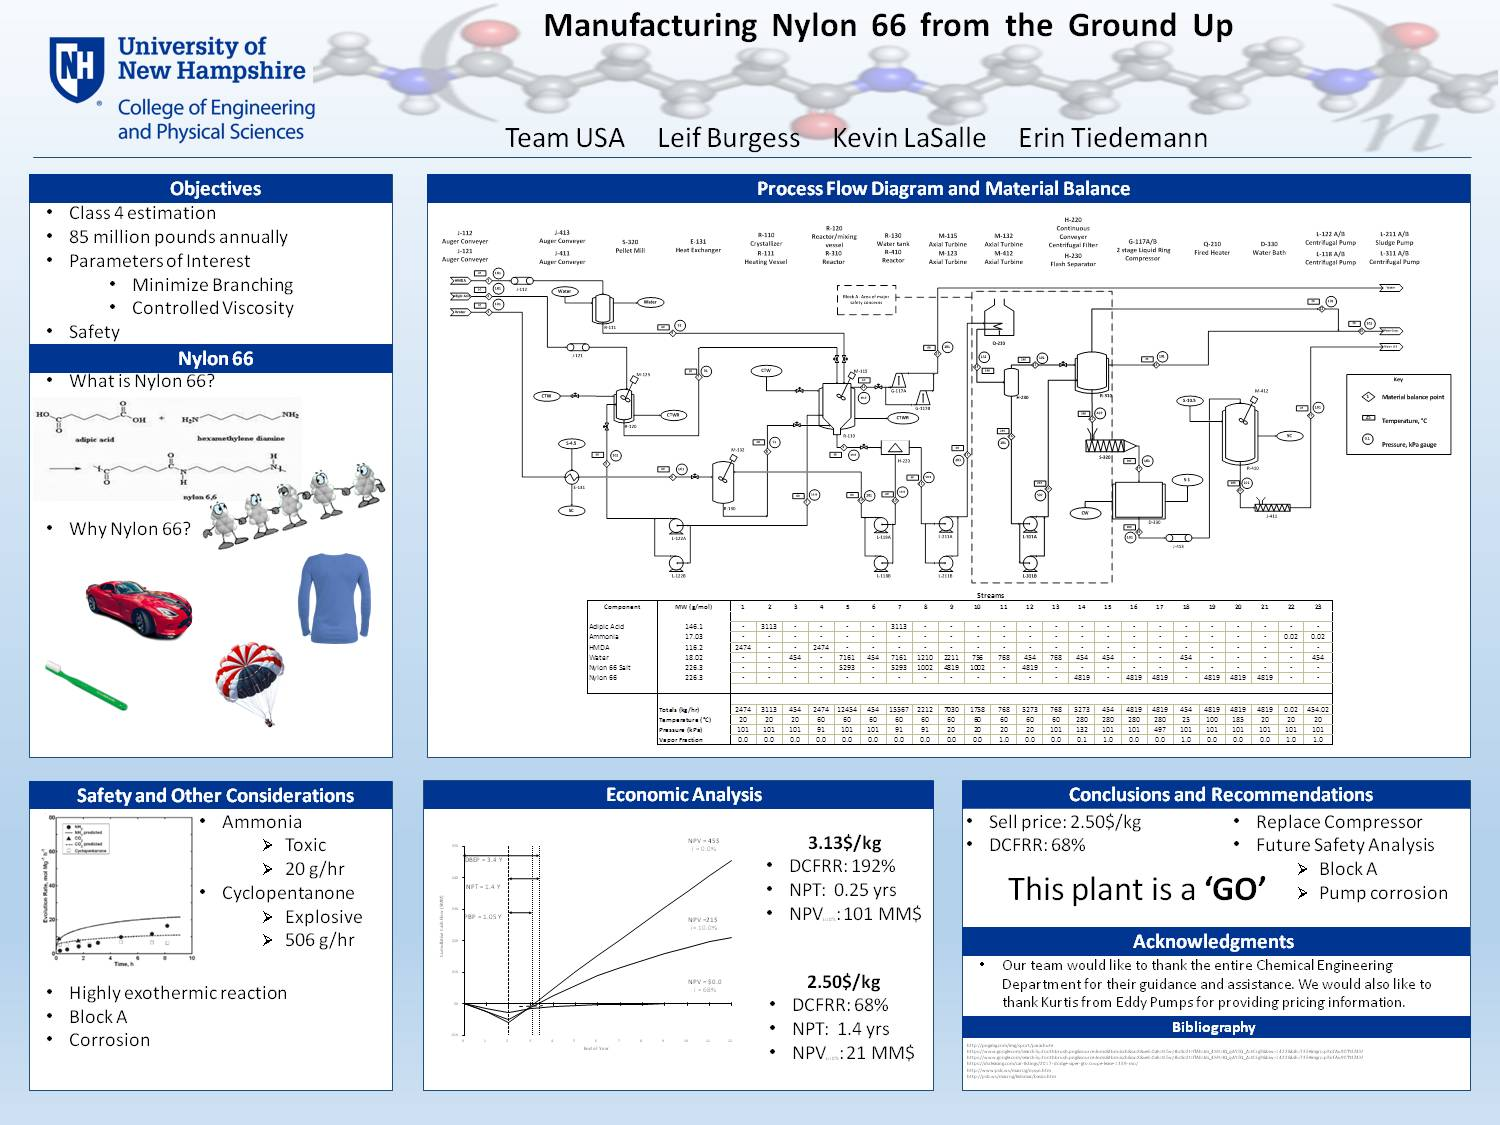 Manufacturing Nylon 66 From The Ground Up by lev86